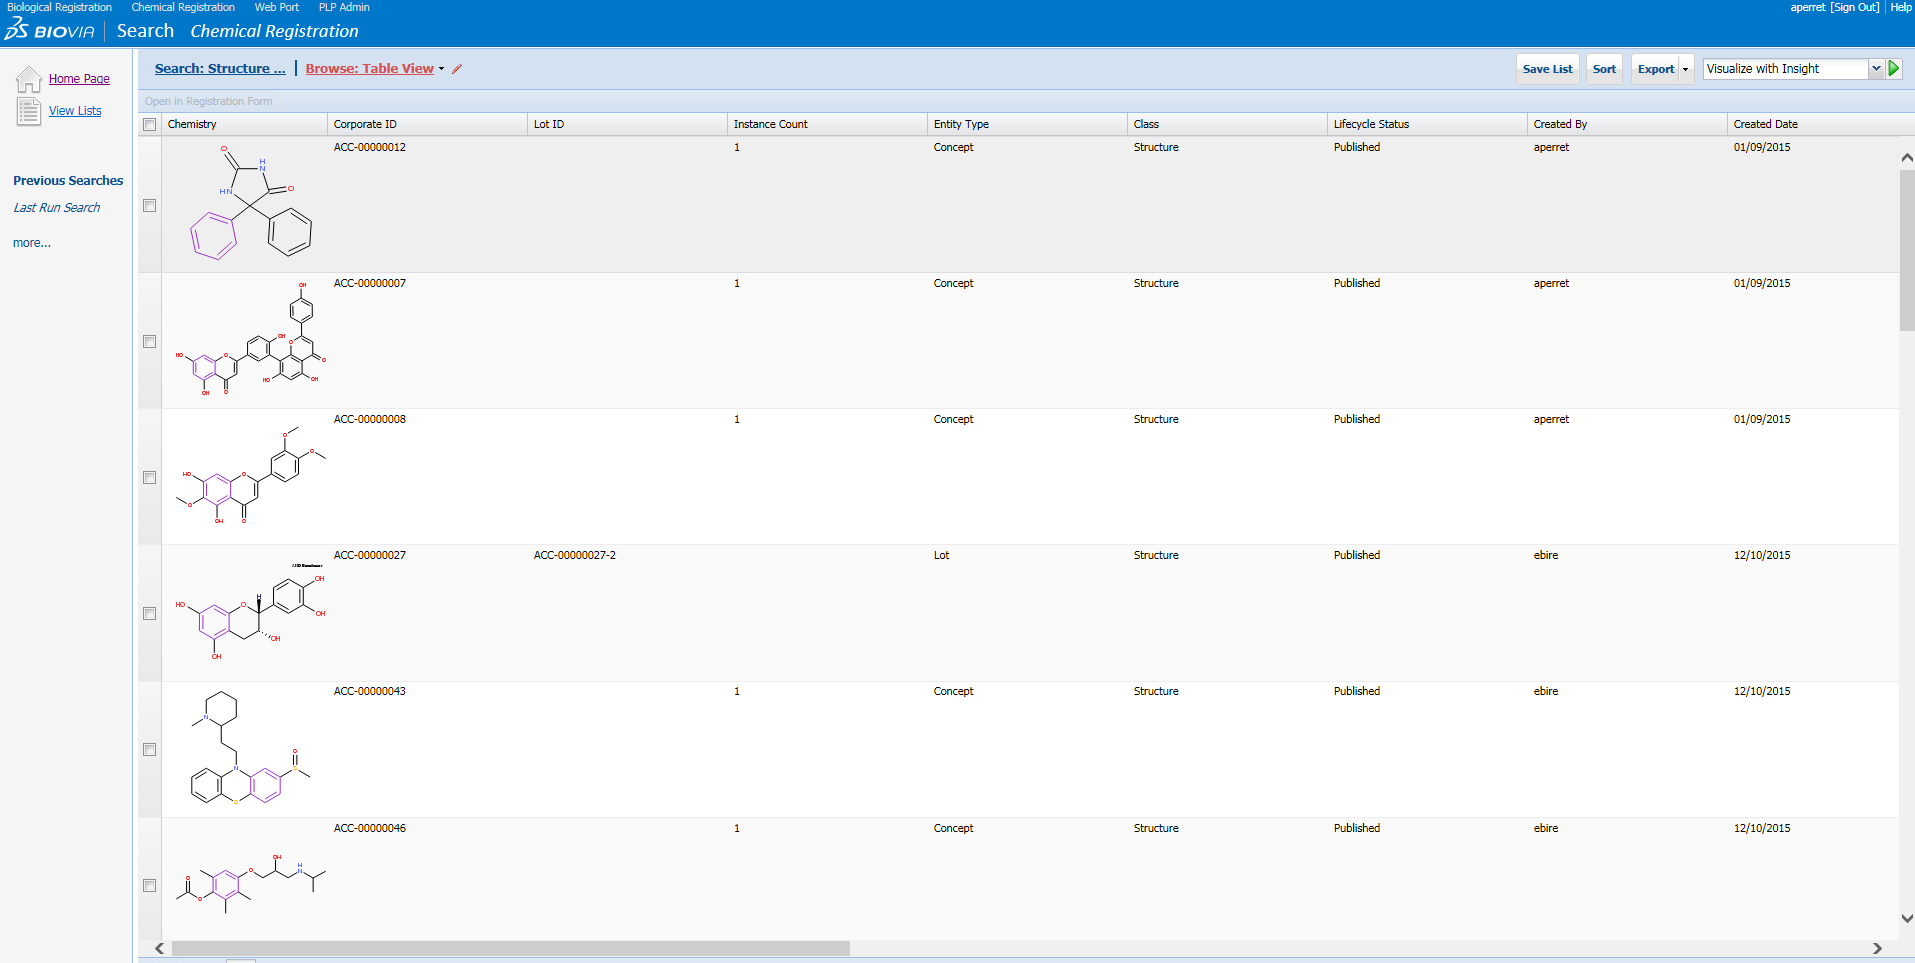 Display of a search by substructure in the registration database.